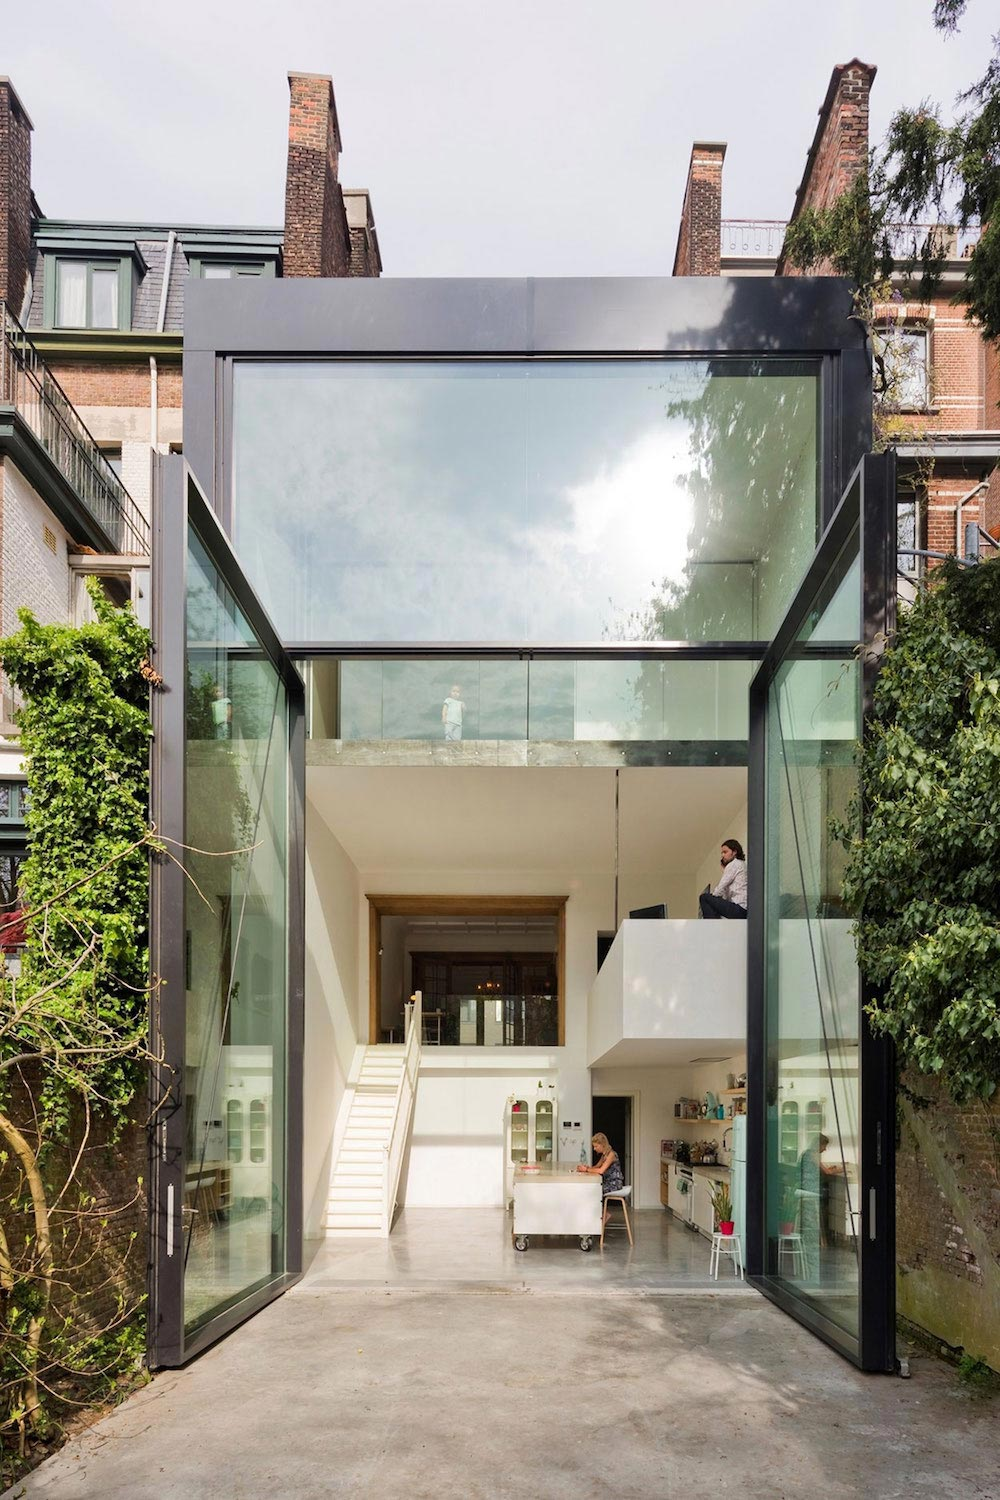 Sculp[IT] design a Town House in Antwerp with the world's largest pivoting window